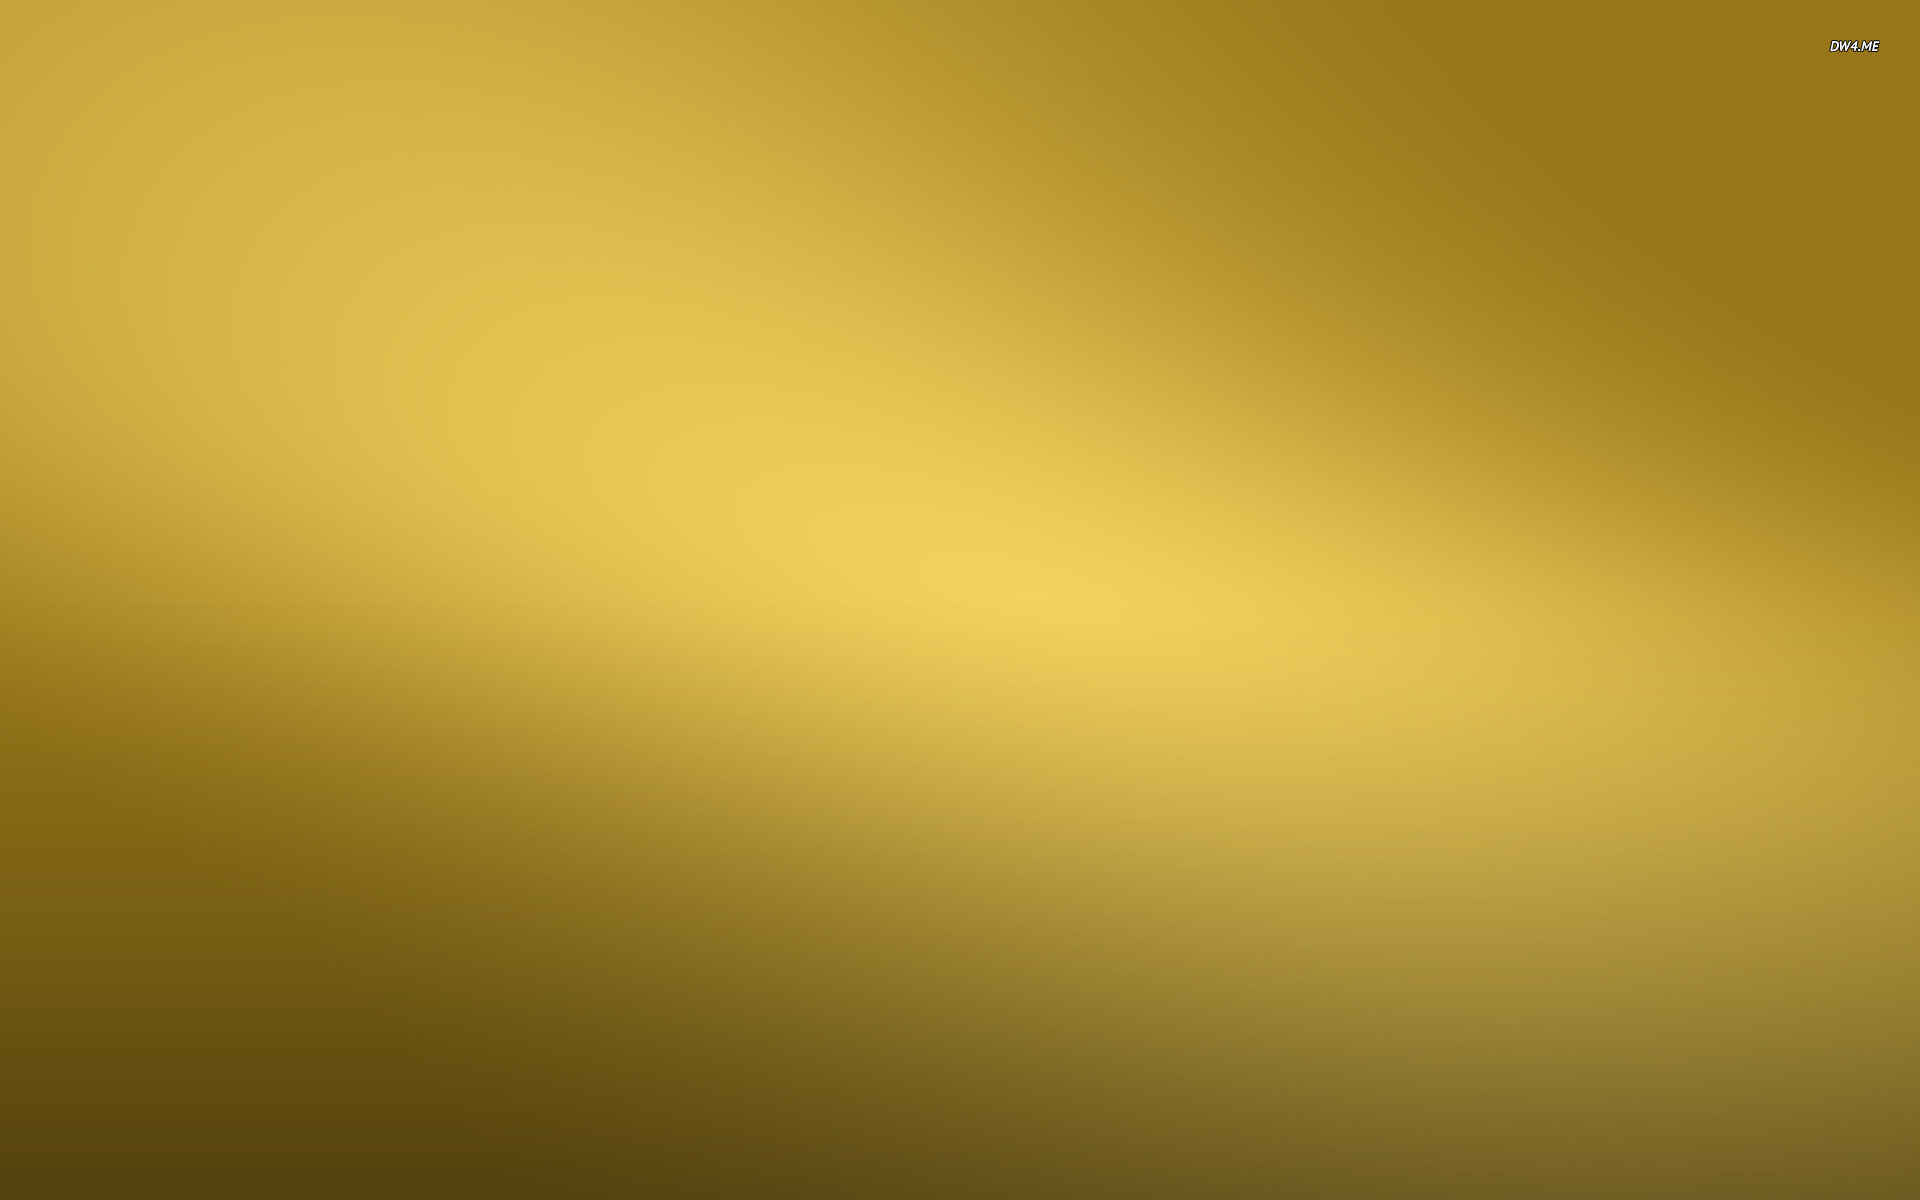 Gold wallpaper   Minimalistic wallpapers   389 1920x1200